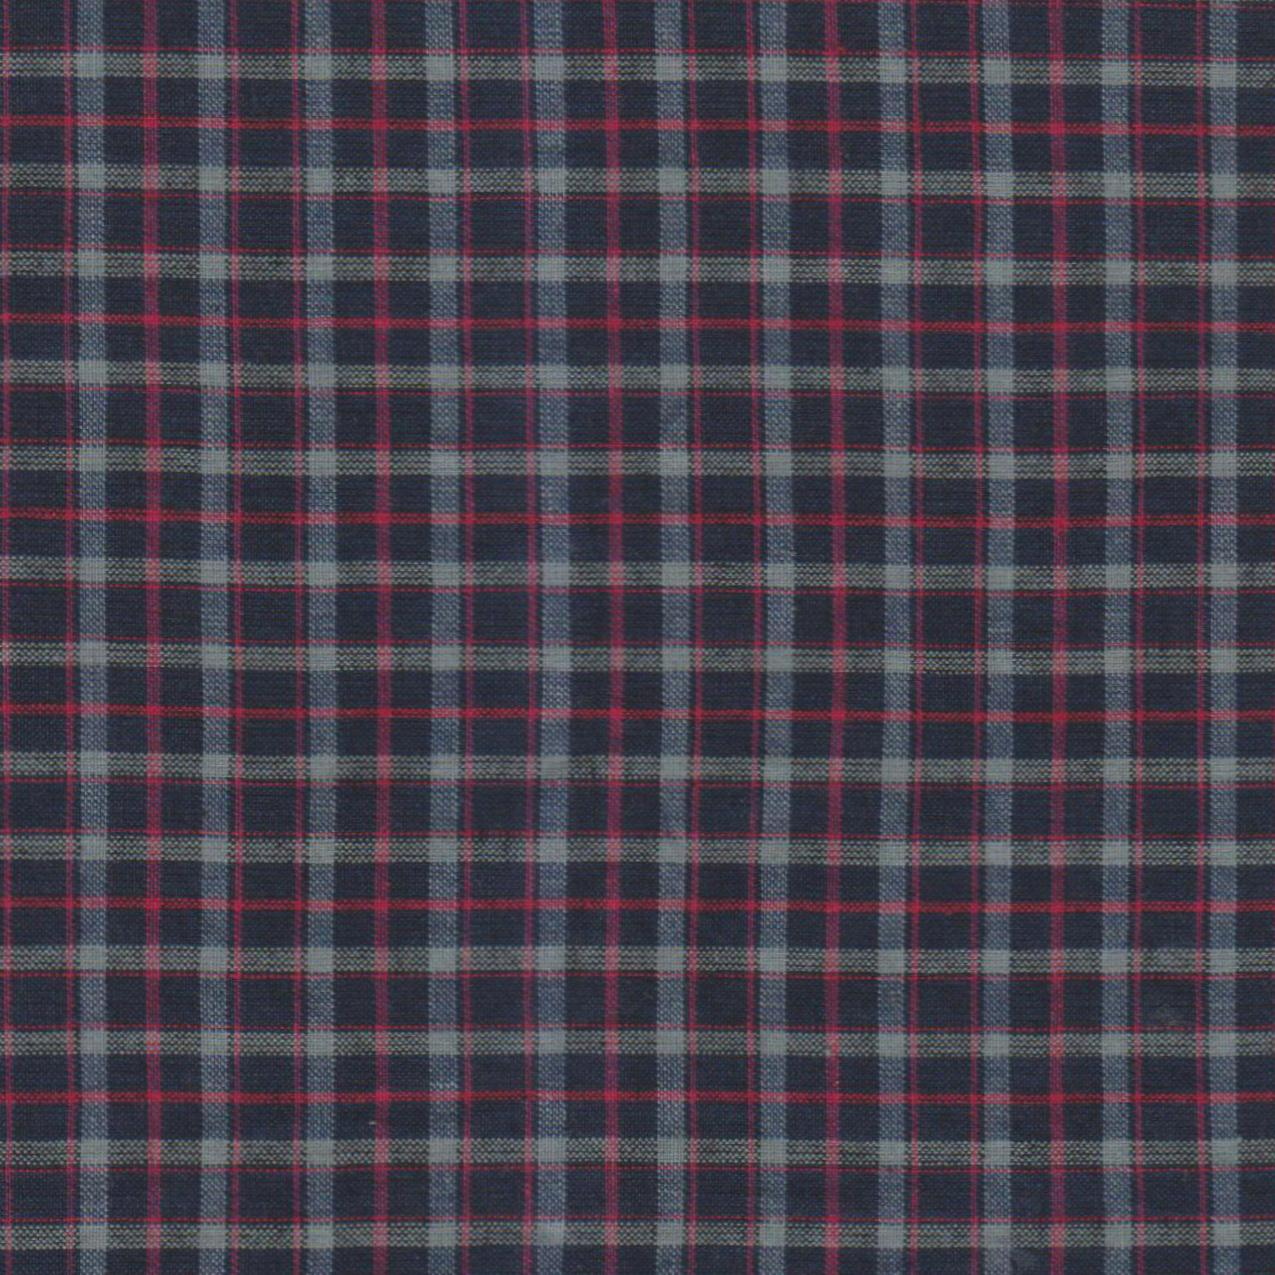 """Rustic Red and Tan Check Plaid Fabric Swatch 4"""" x 4"""""""